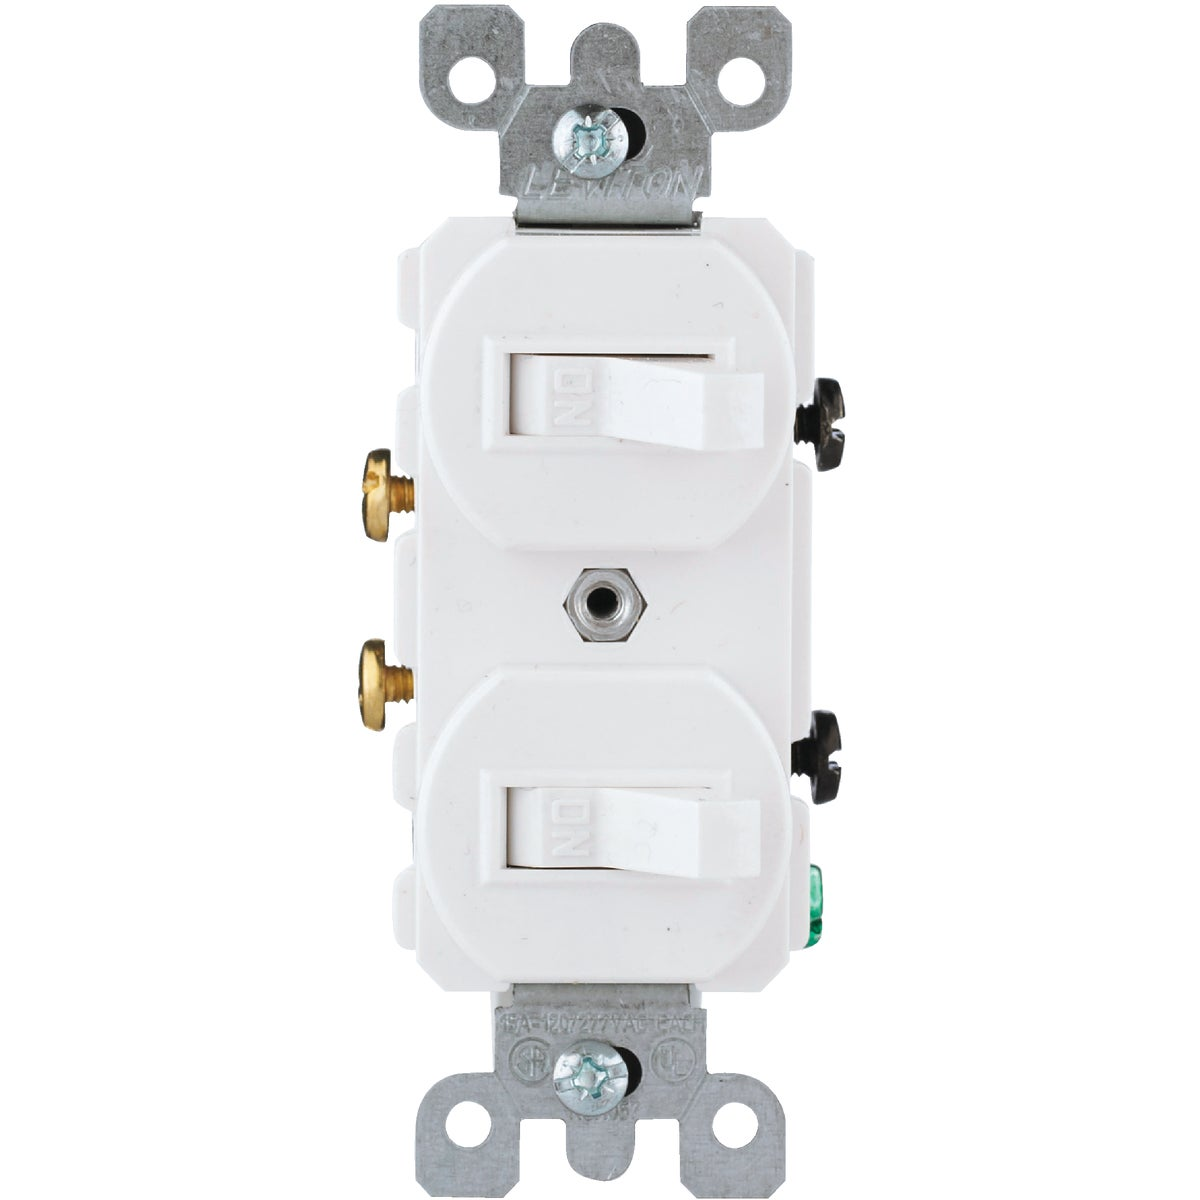 WHT DUPLEX SWITCH - R62052242WS by Leviton Mfg Co